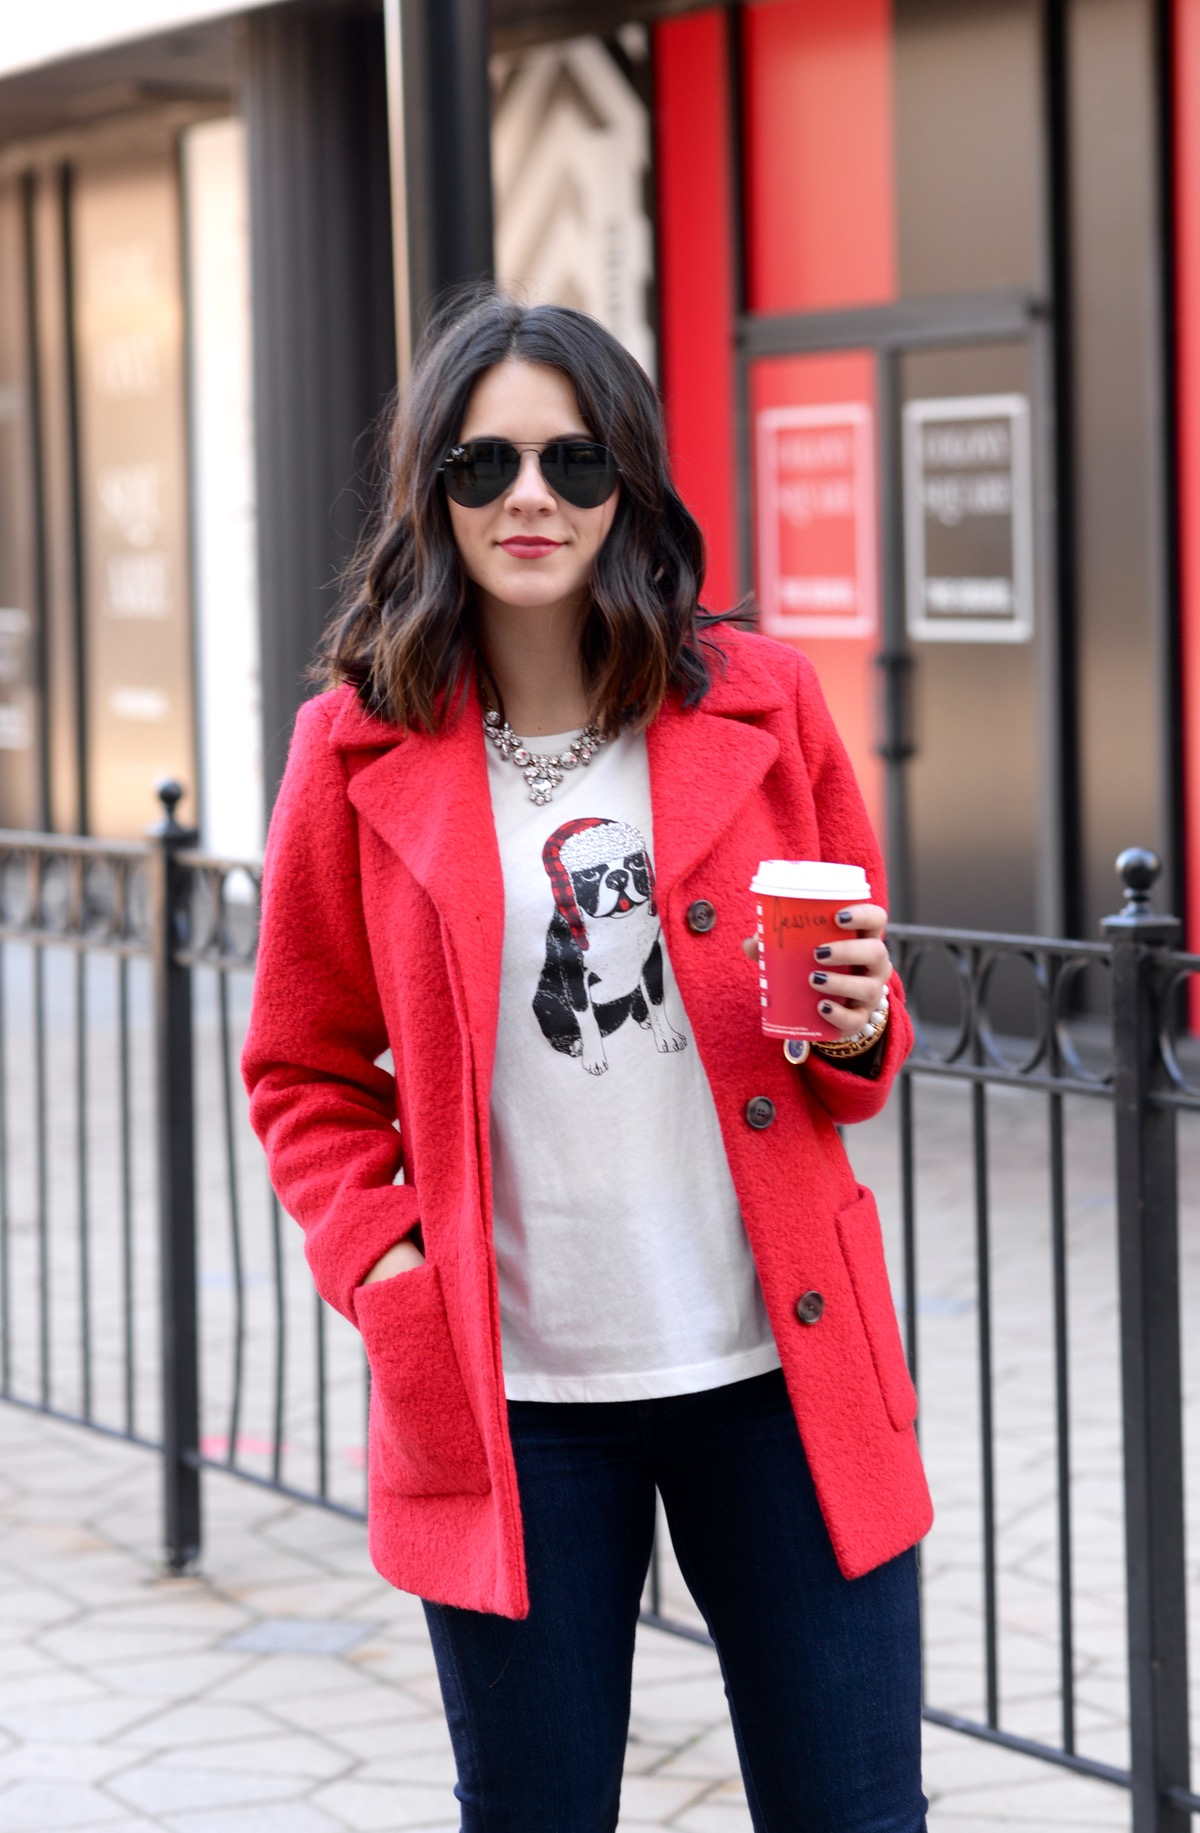 The Best Outlets for Holiday Shopping - My Style Vita